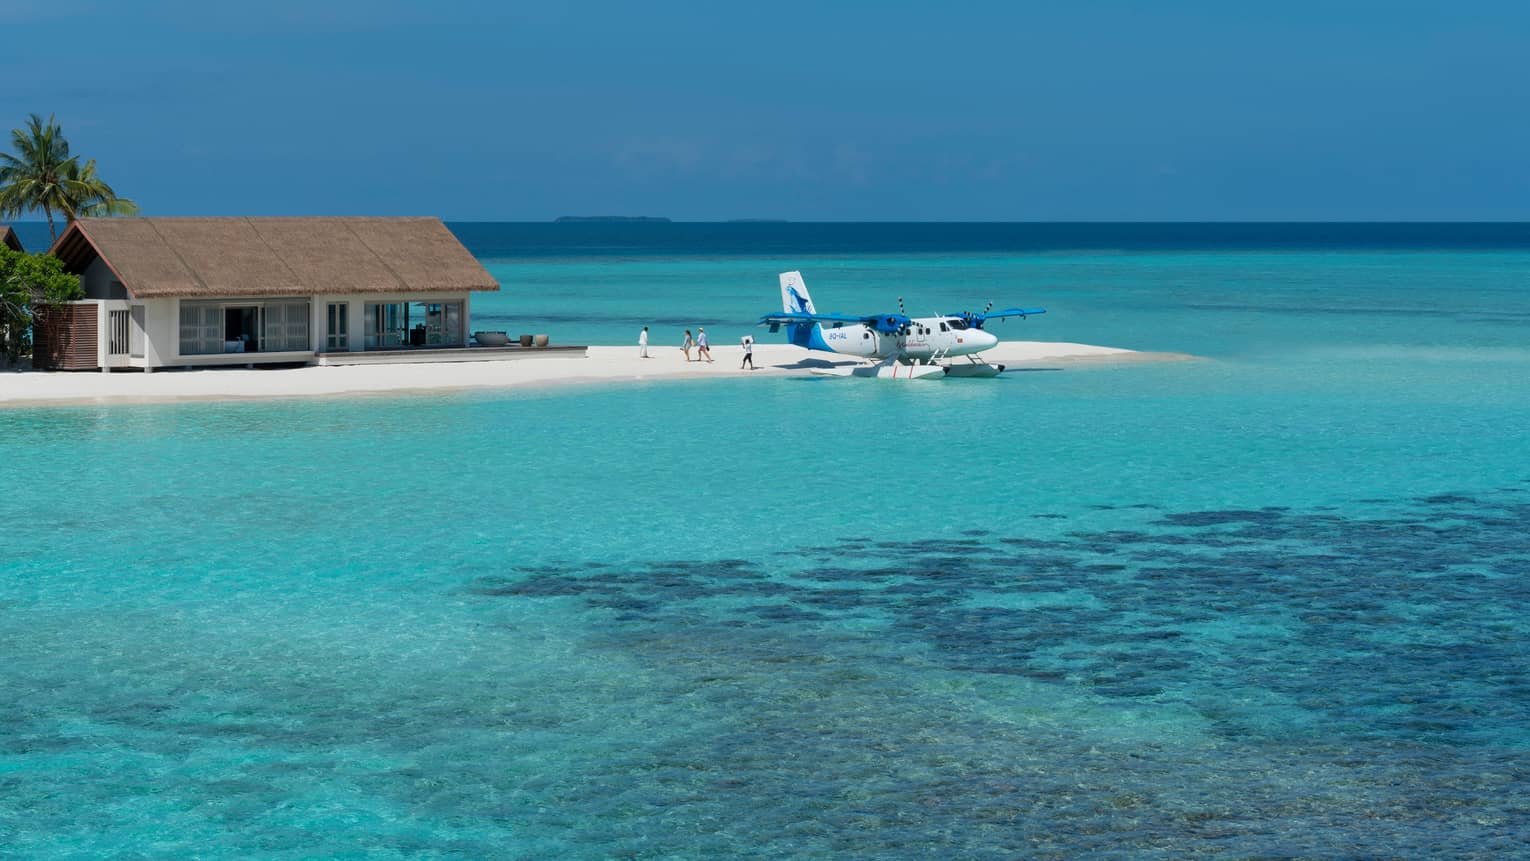 Guests descend from private float plane parked at white sand beach